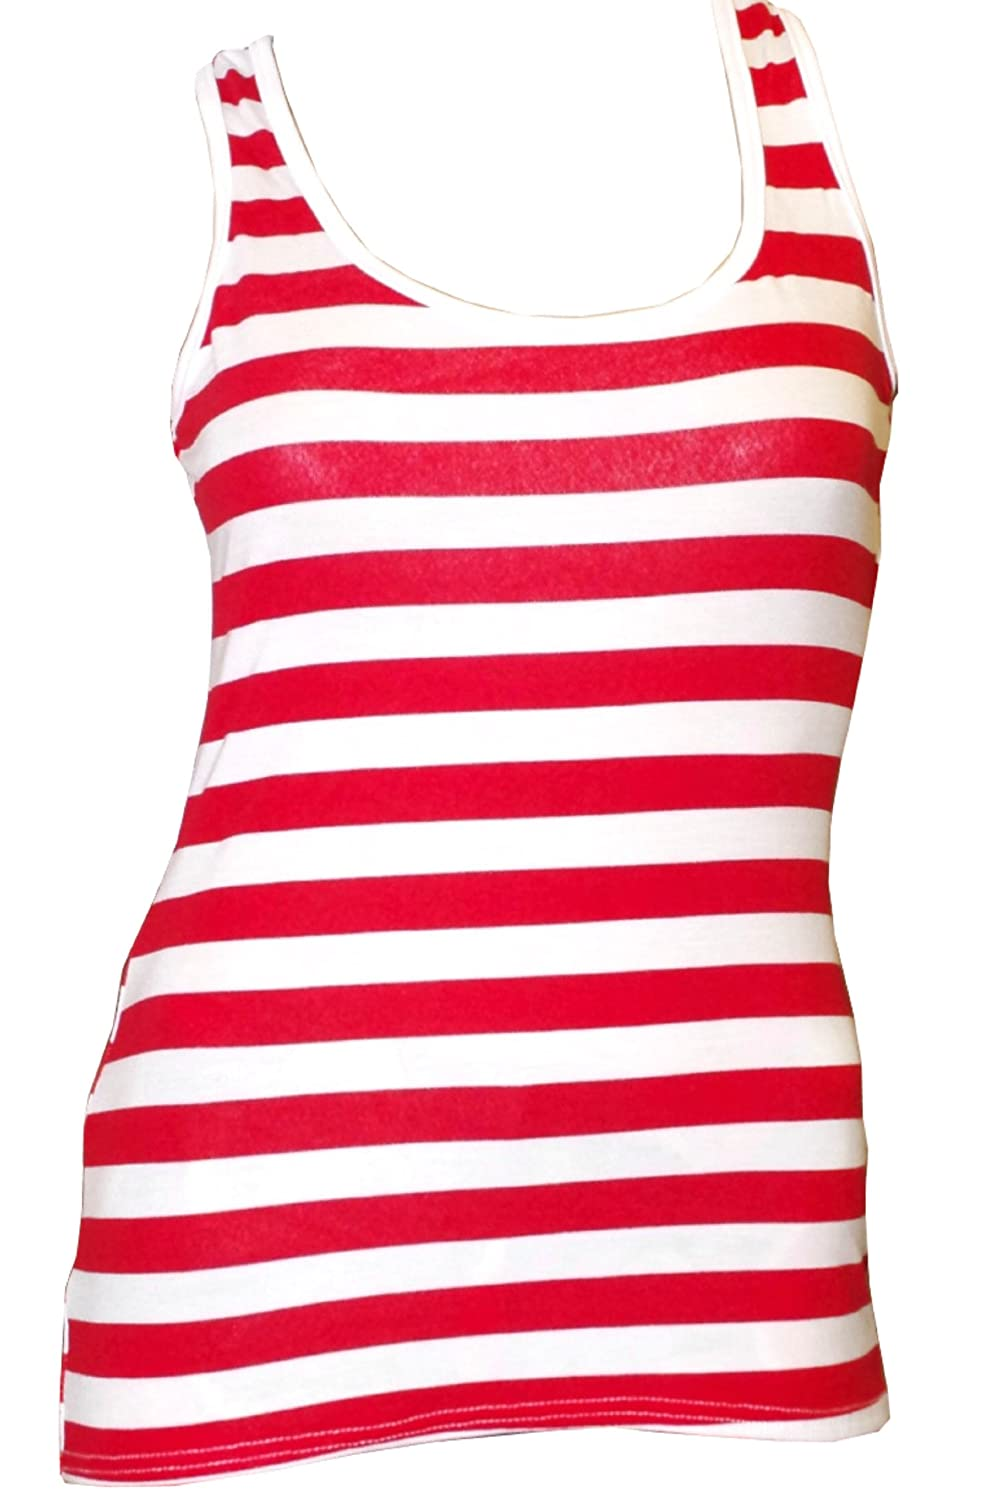 Girls Striped Vest Top with racer back - age 4 to 12 years Red & White)